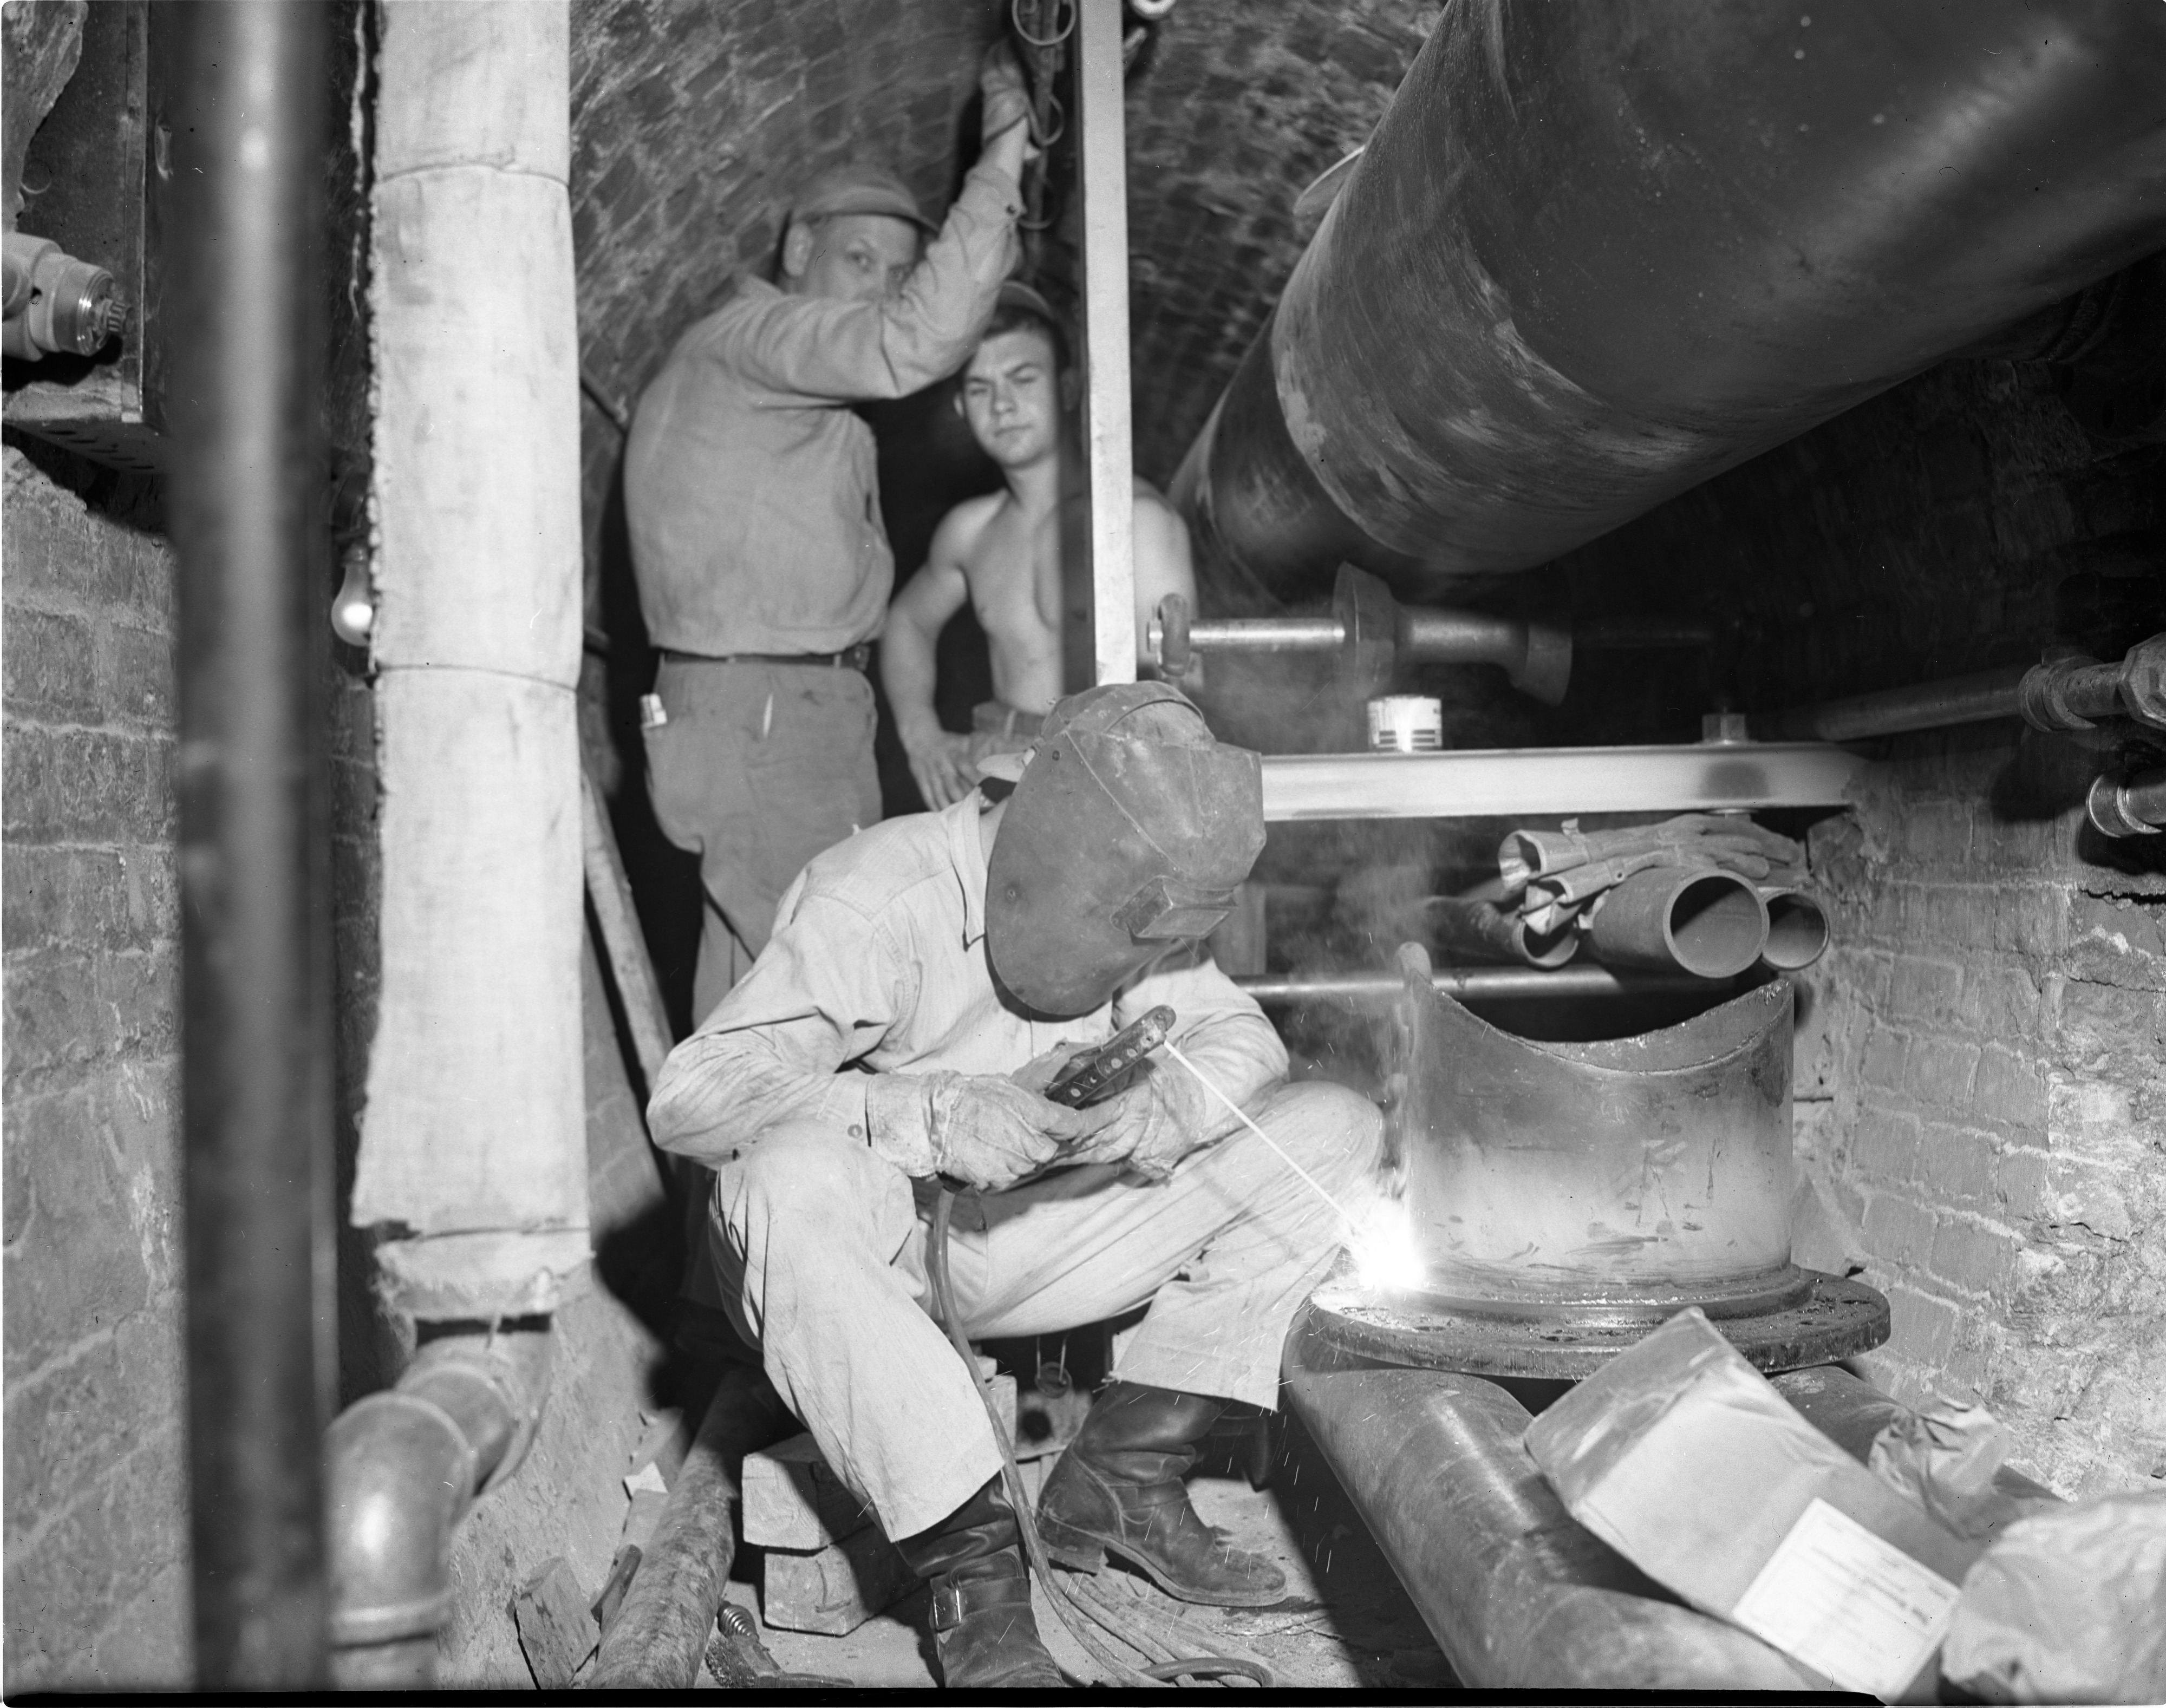 Workers In U-M Underground Tunnels, August 7, 1947 image